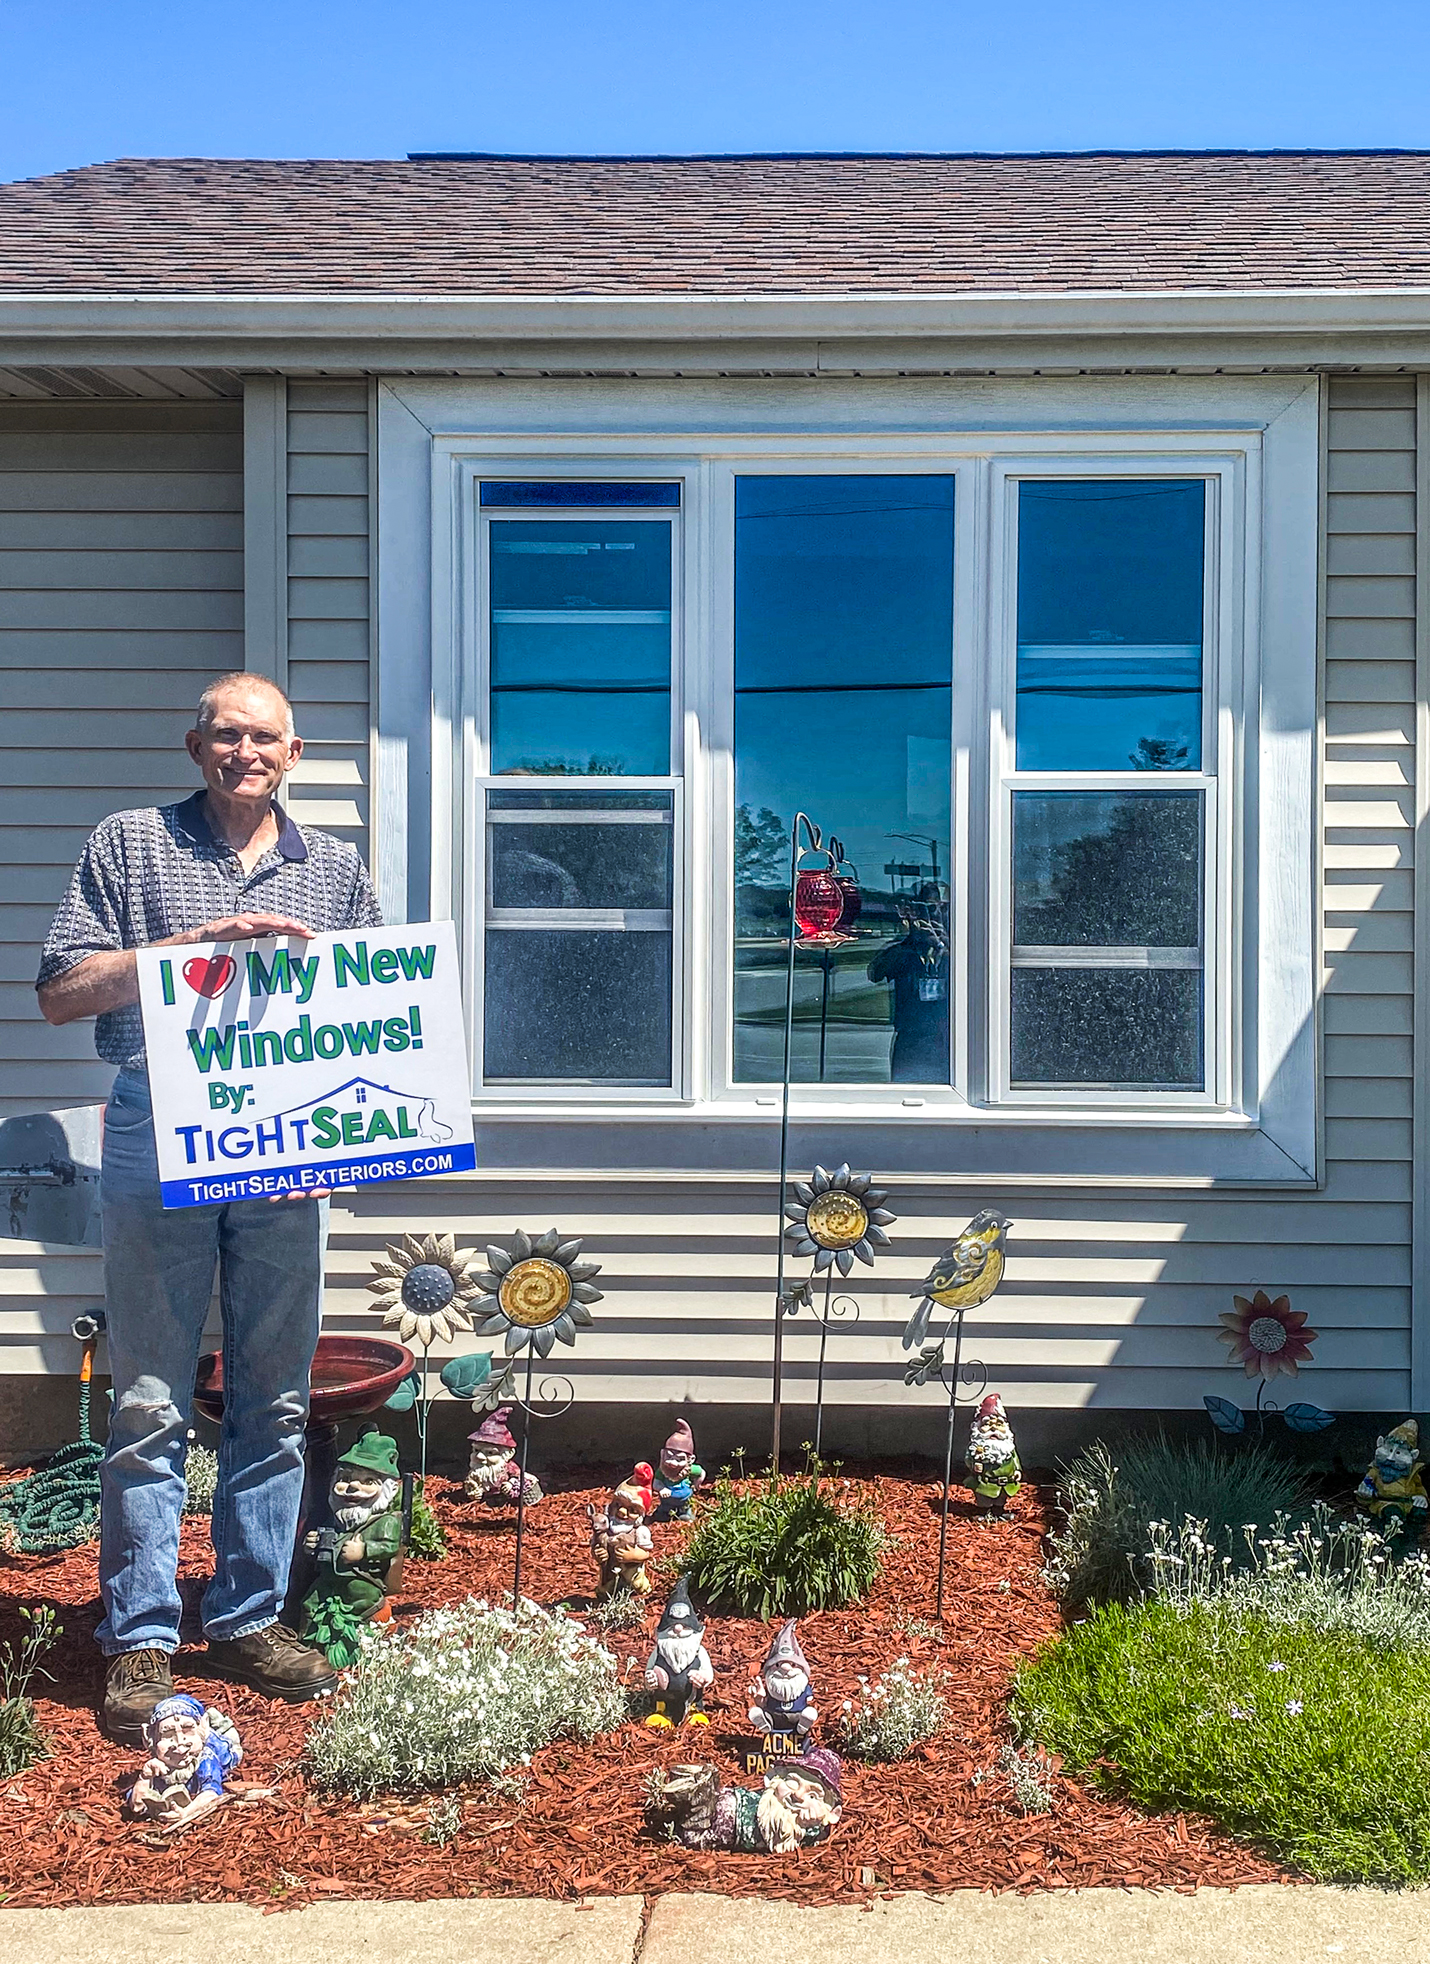 Home Window Replacement in Lake Mills, WI by TightSeal Exteriors & Baths